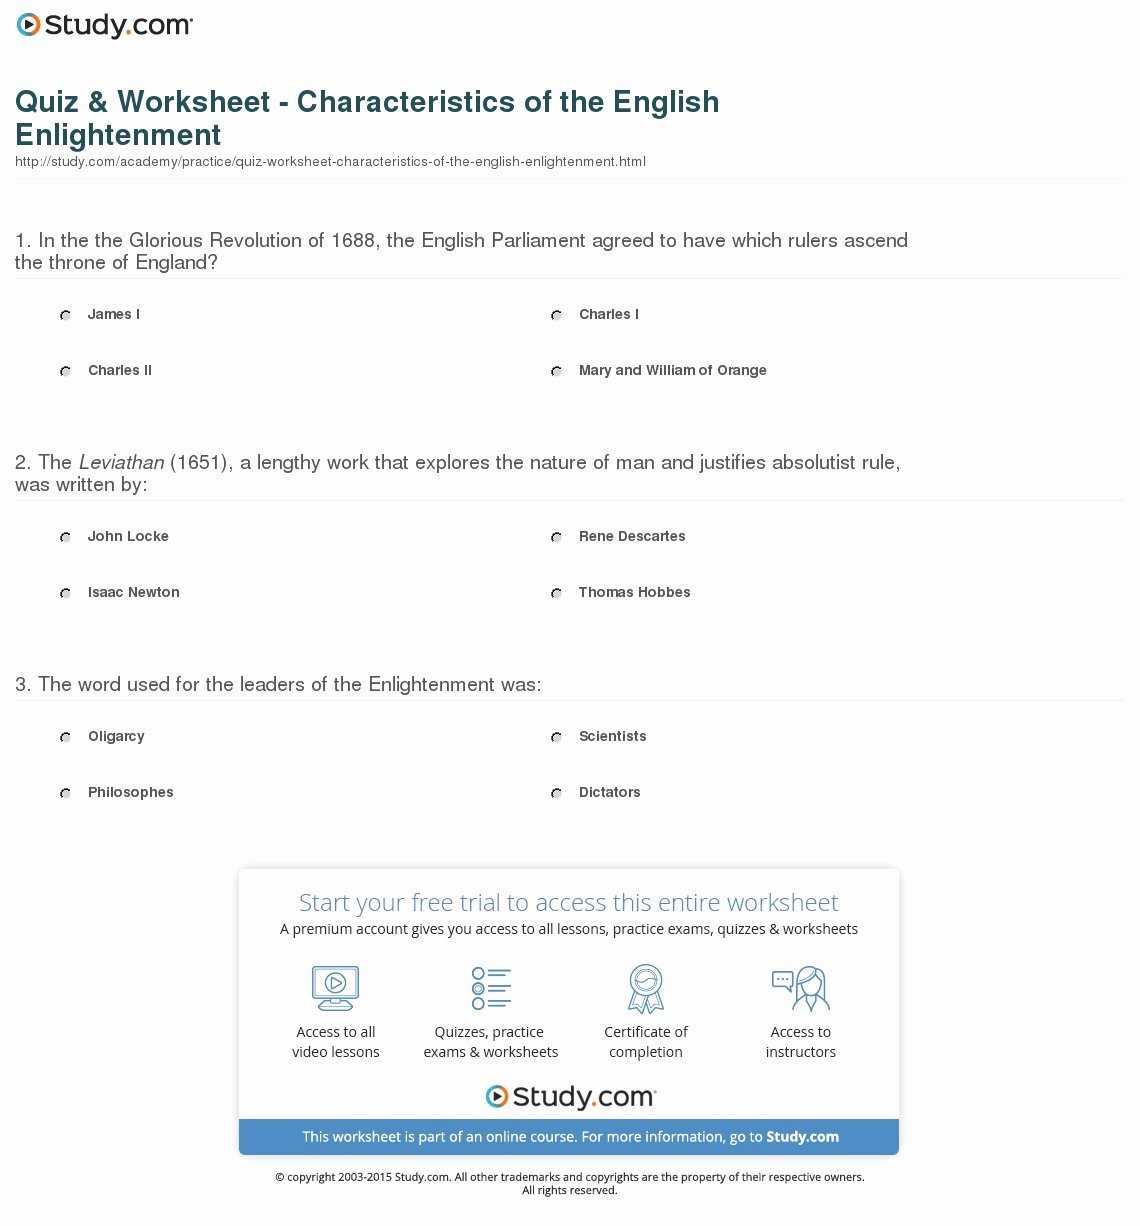 The Enlightenment Worksheet Answers Inspirational Quiz & Worksheet Characteristics Of the English